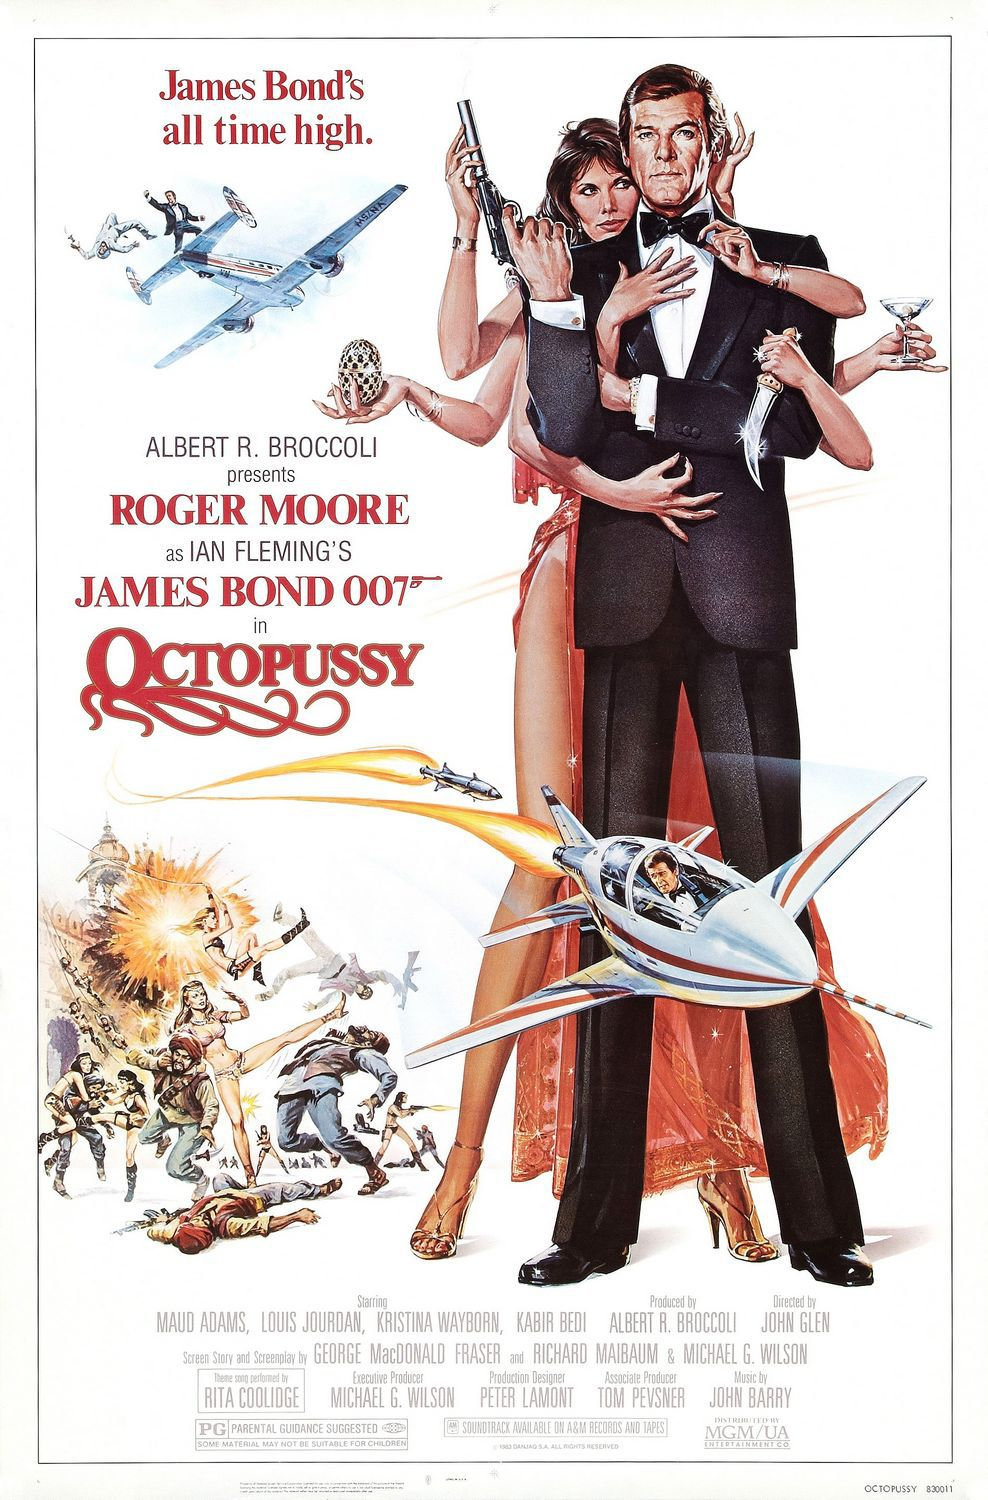 1983 - 007 Octopussy - Operazione piovra - film poster Roger Moore